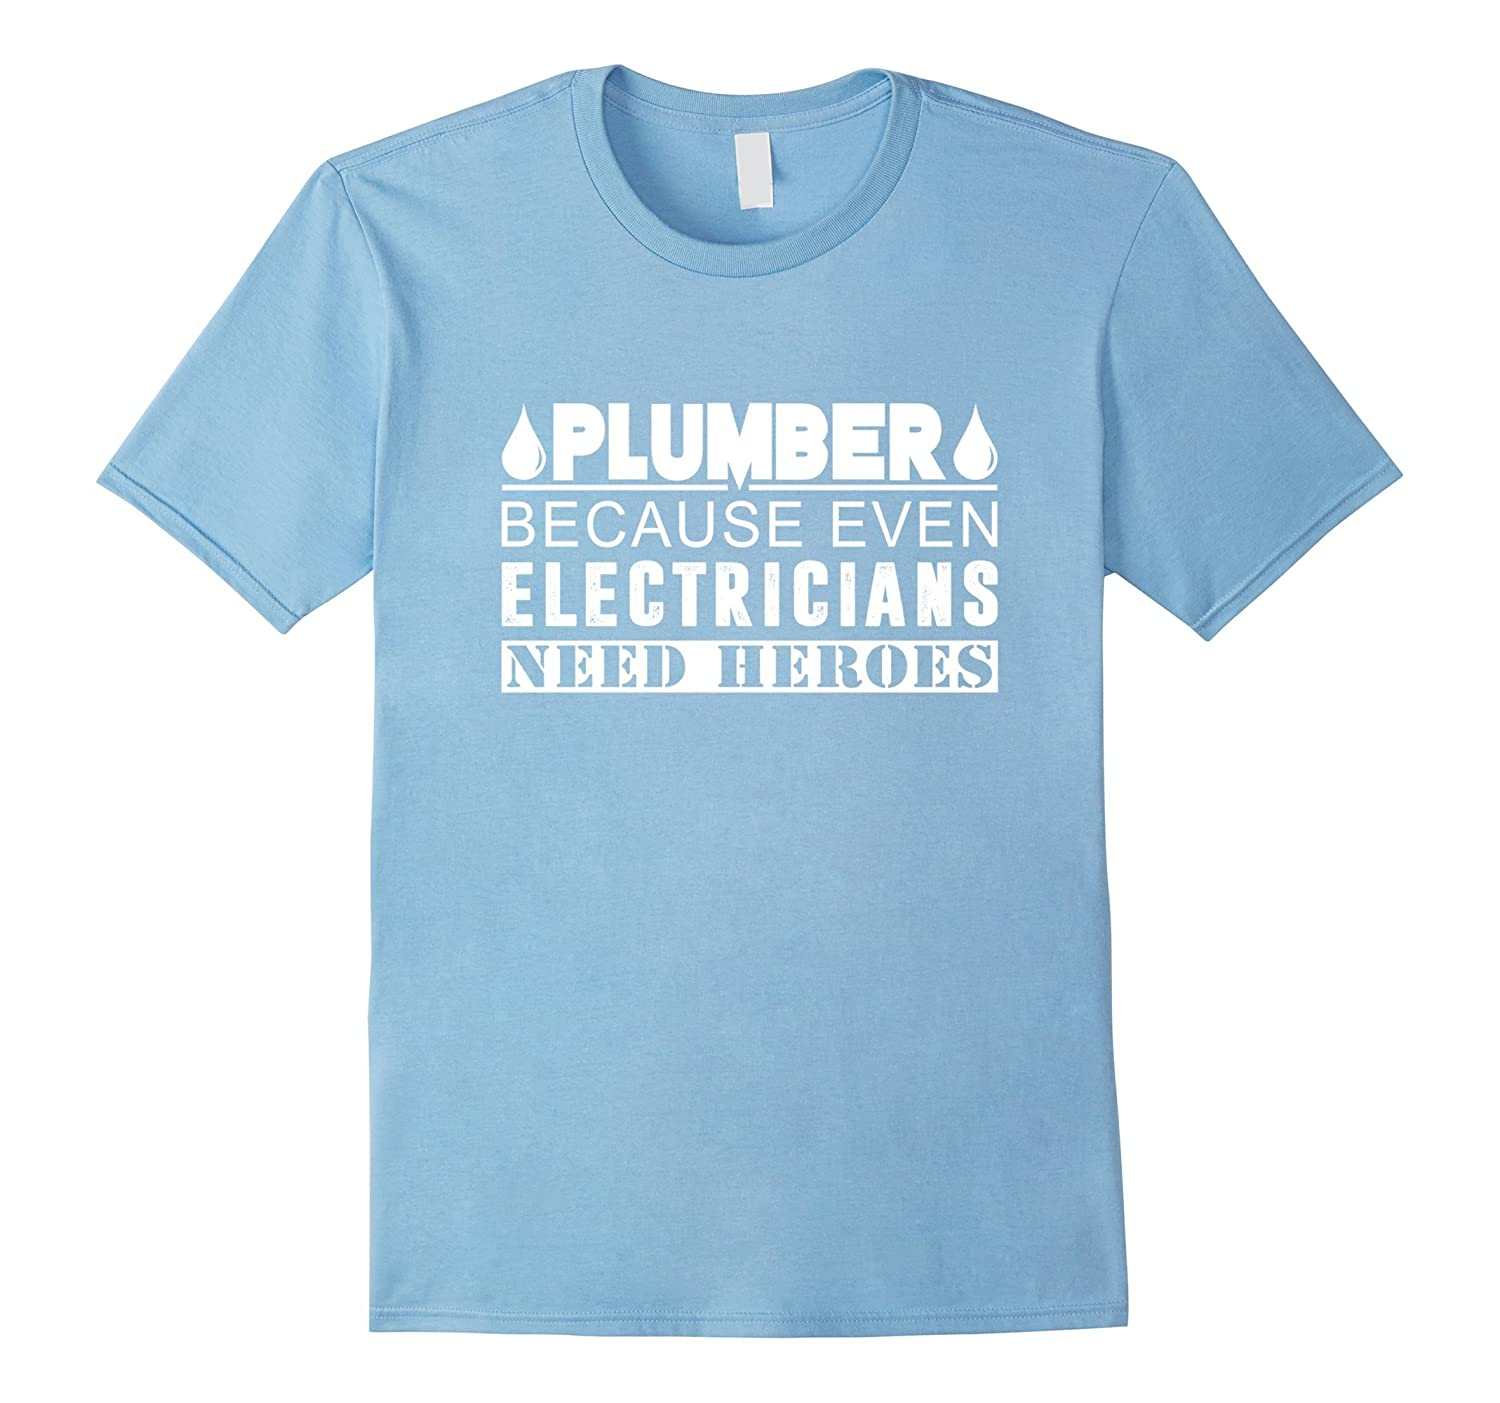 Plumber Because Even Electricians Need Heroes T-Shirt-TD